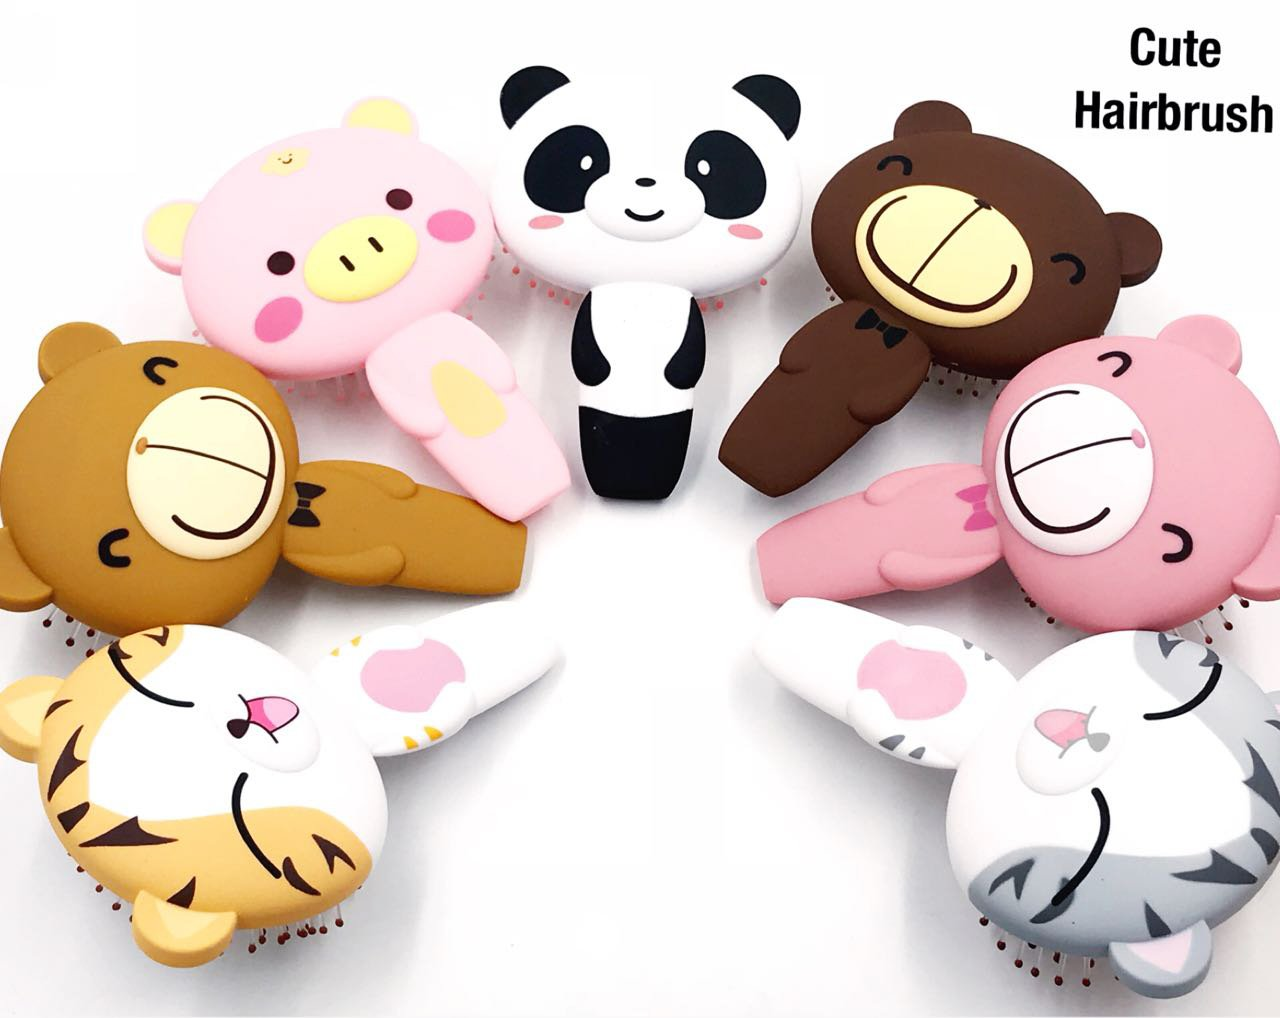 Buy Premium Silicone 3d Cartoon Kids Hair Brush Hair Comb Cute Hair Brush For Children 1pcs Online At Low Prices In India Amazon In